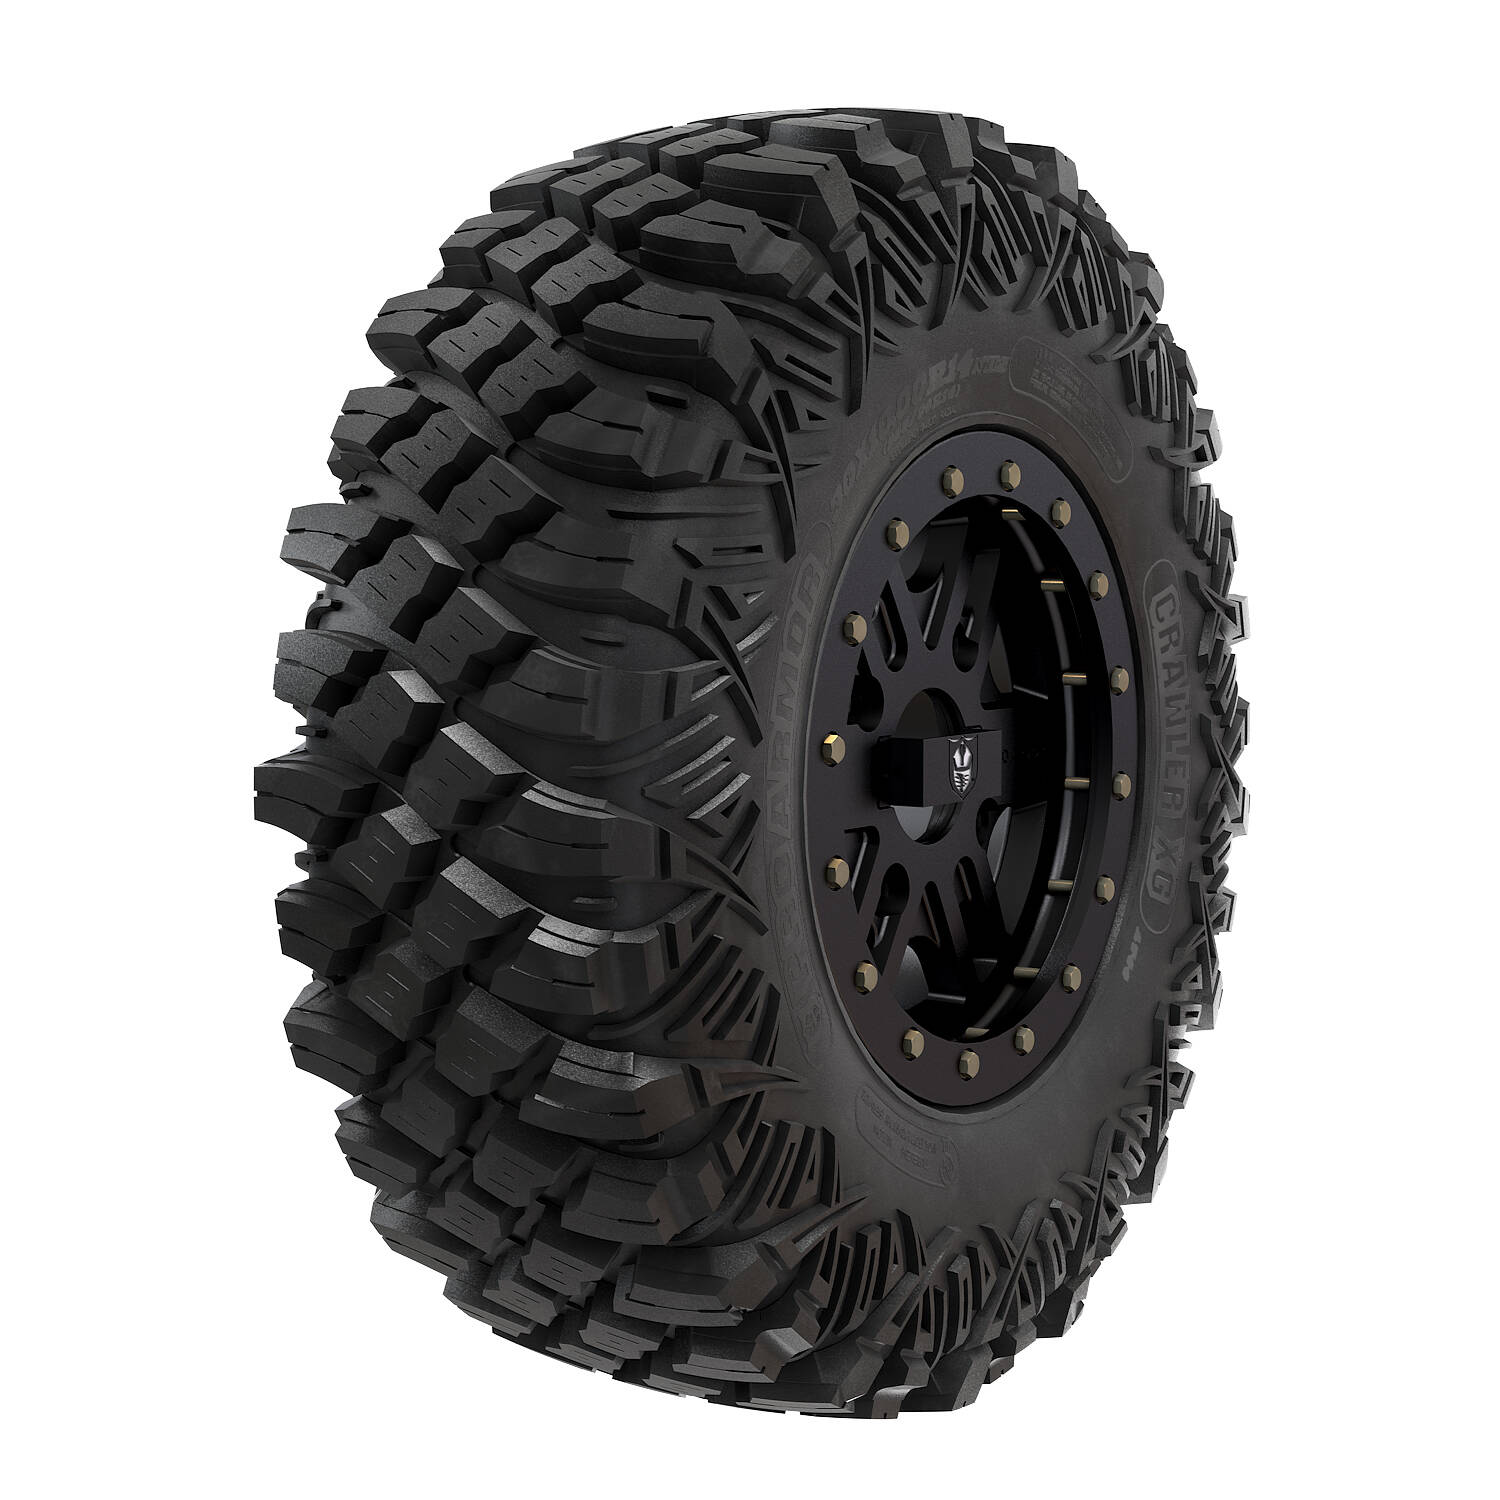 Pro Armor® Wheel & Tire Set: Combat - Matte Black & Crawler XG - 30""